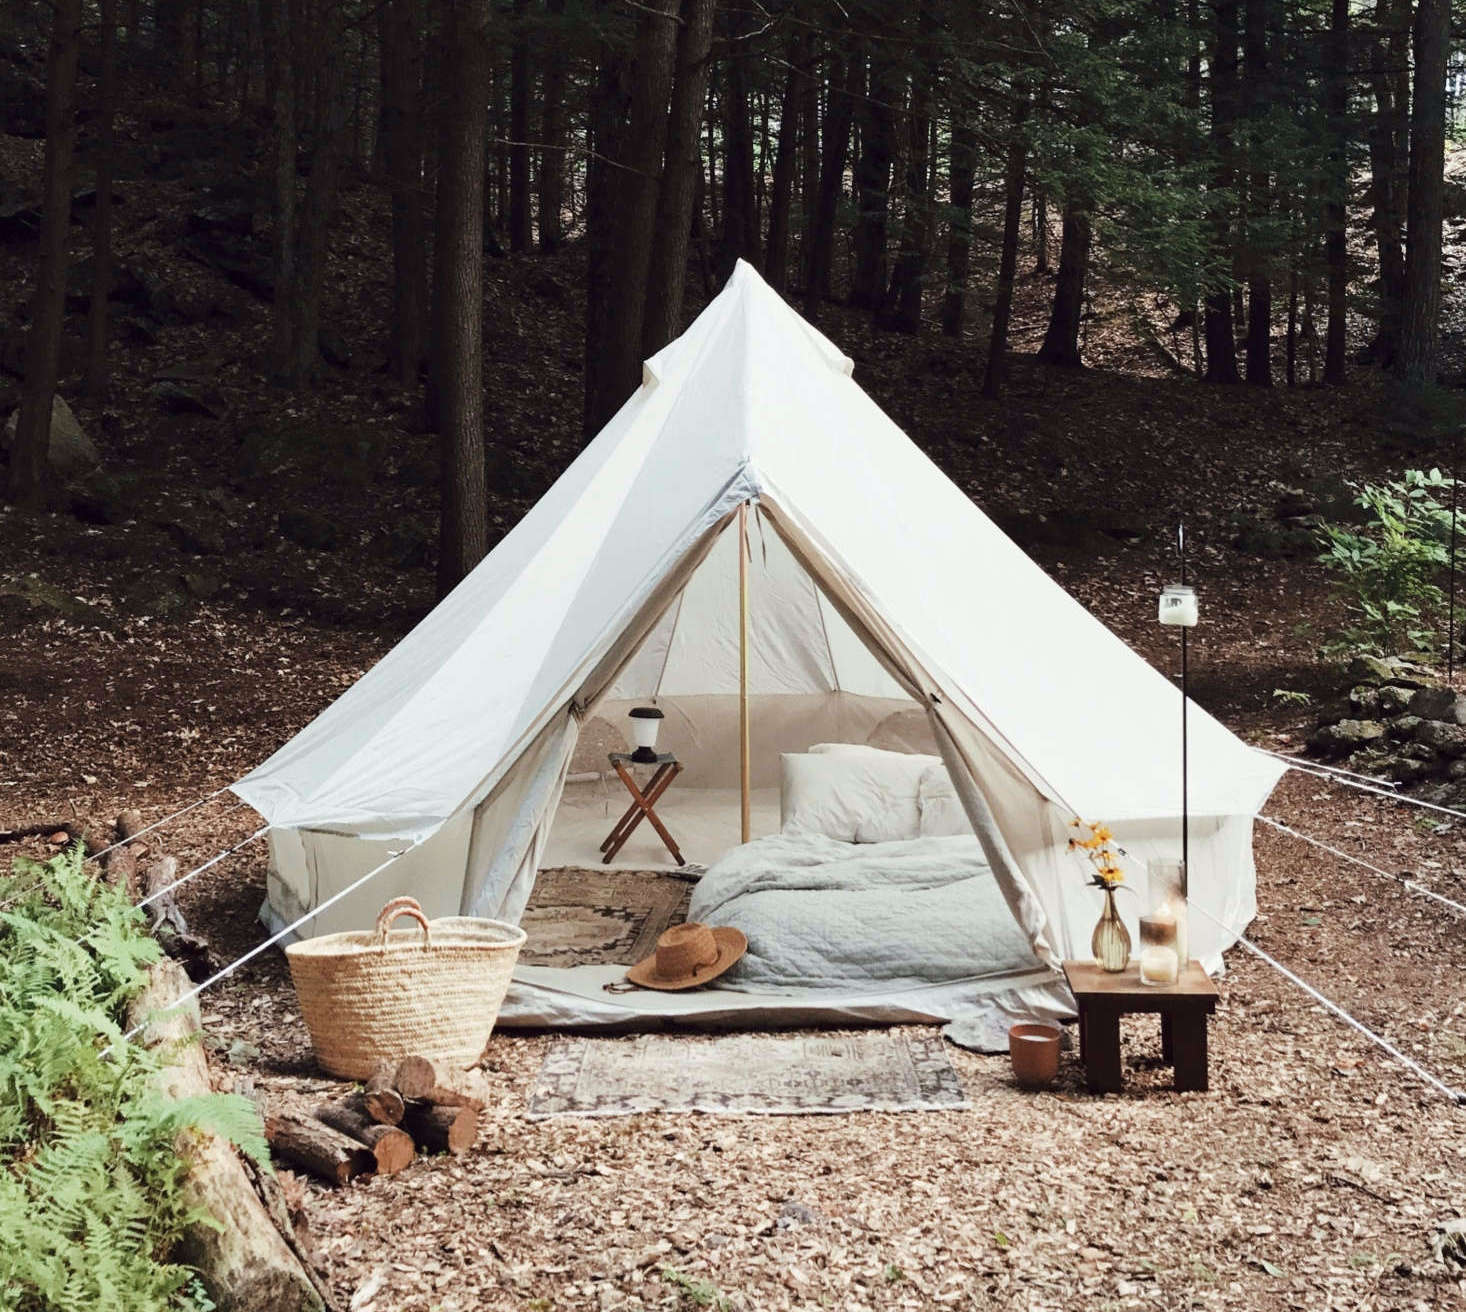 Current Obsessions: At Camp